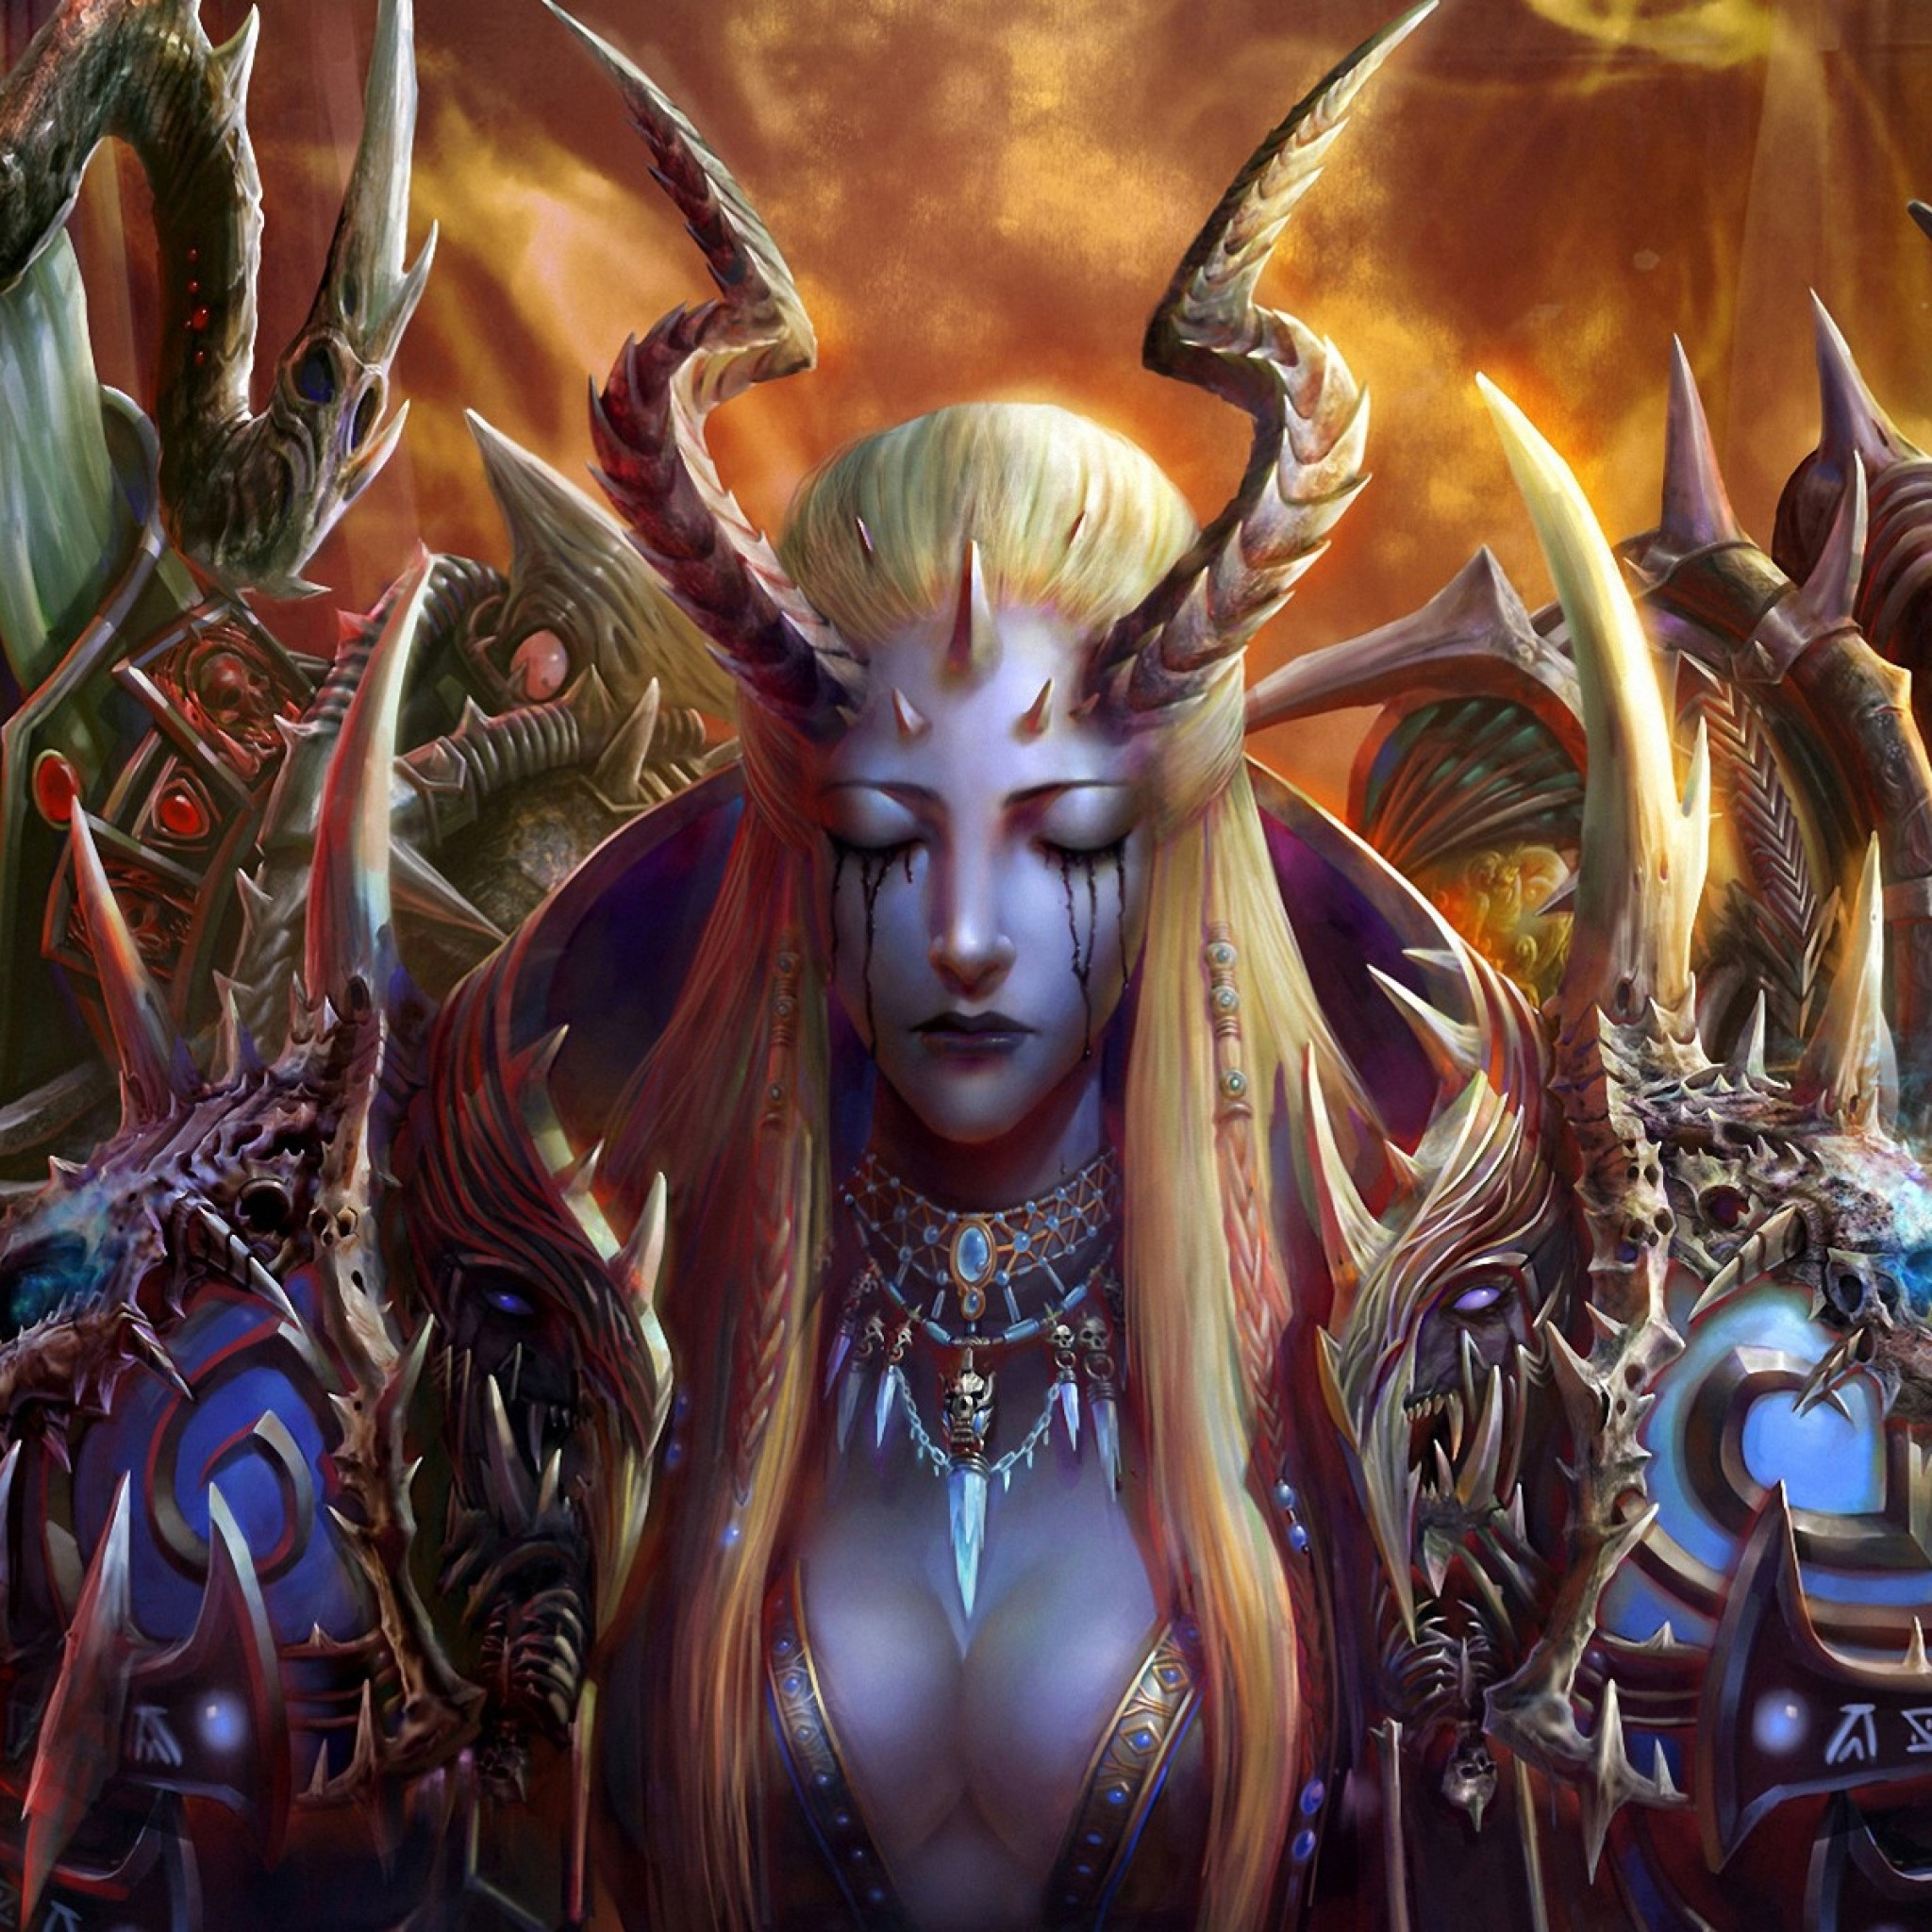 Diablo 3 Wallpaper 1920x1080: Female Demon Wallpaper (70+ Images